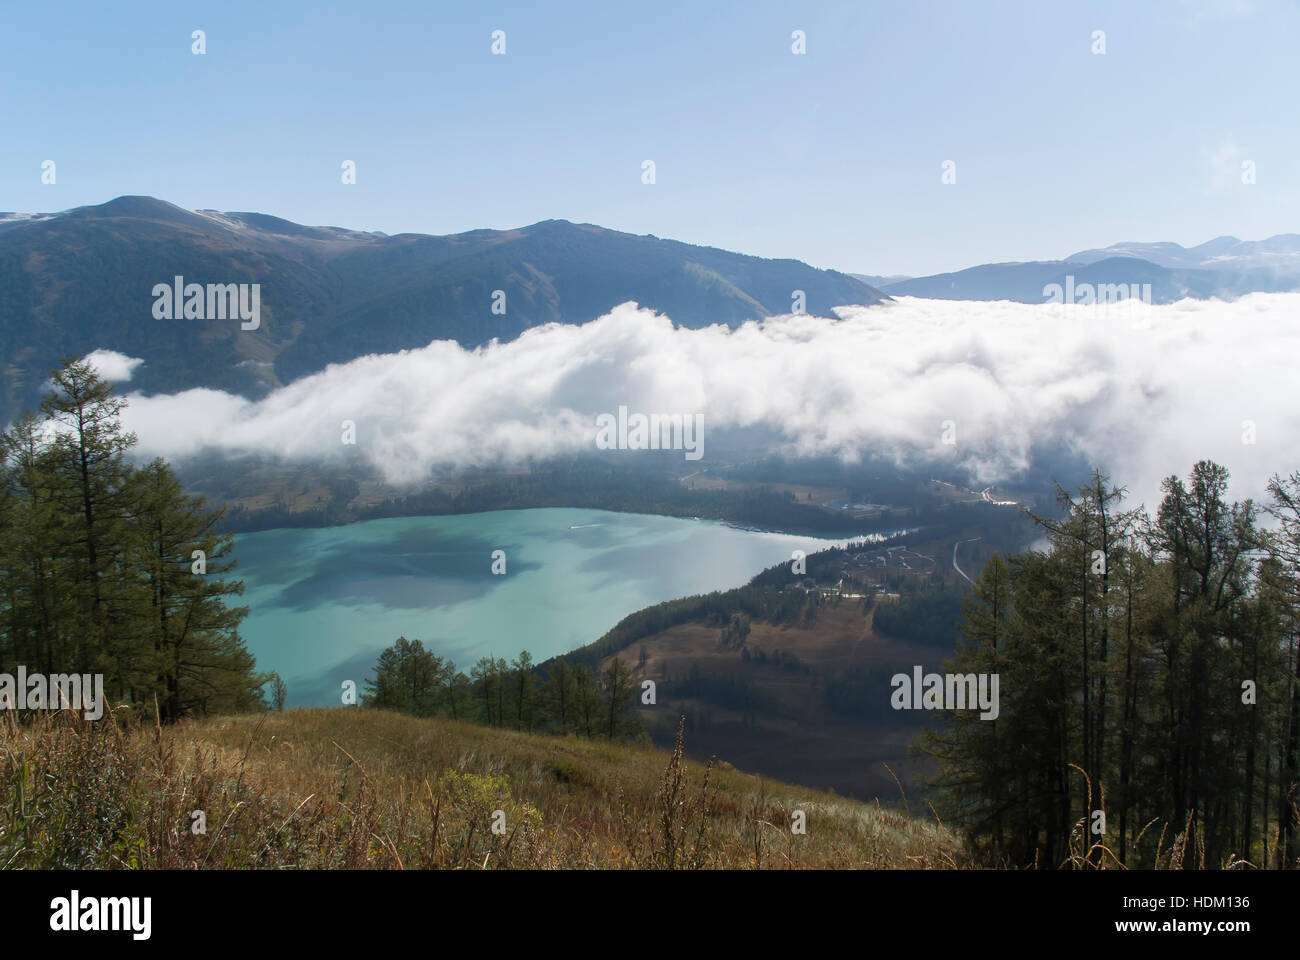 View of Emerald Lake Surrounded by Mountains - Kanas Region, China - Stock Image